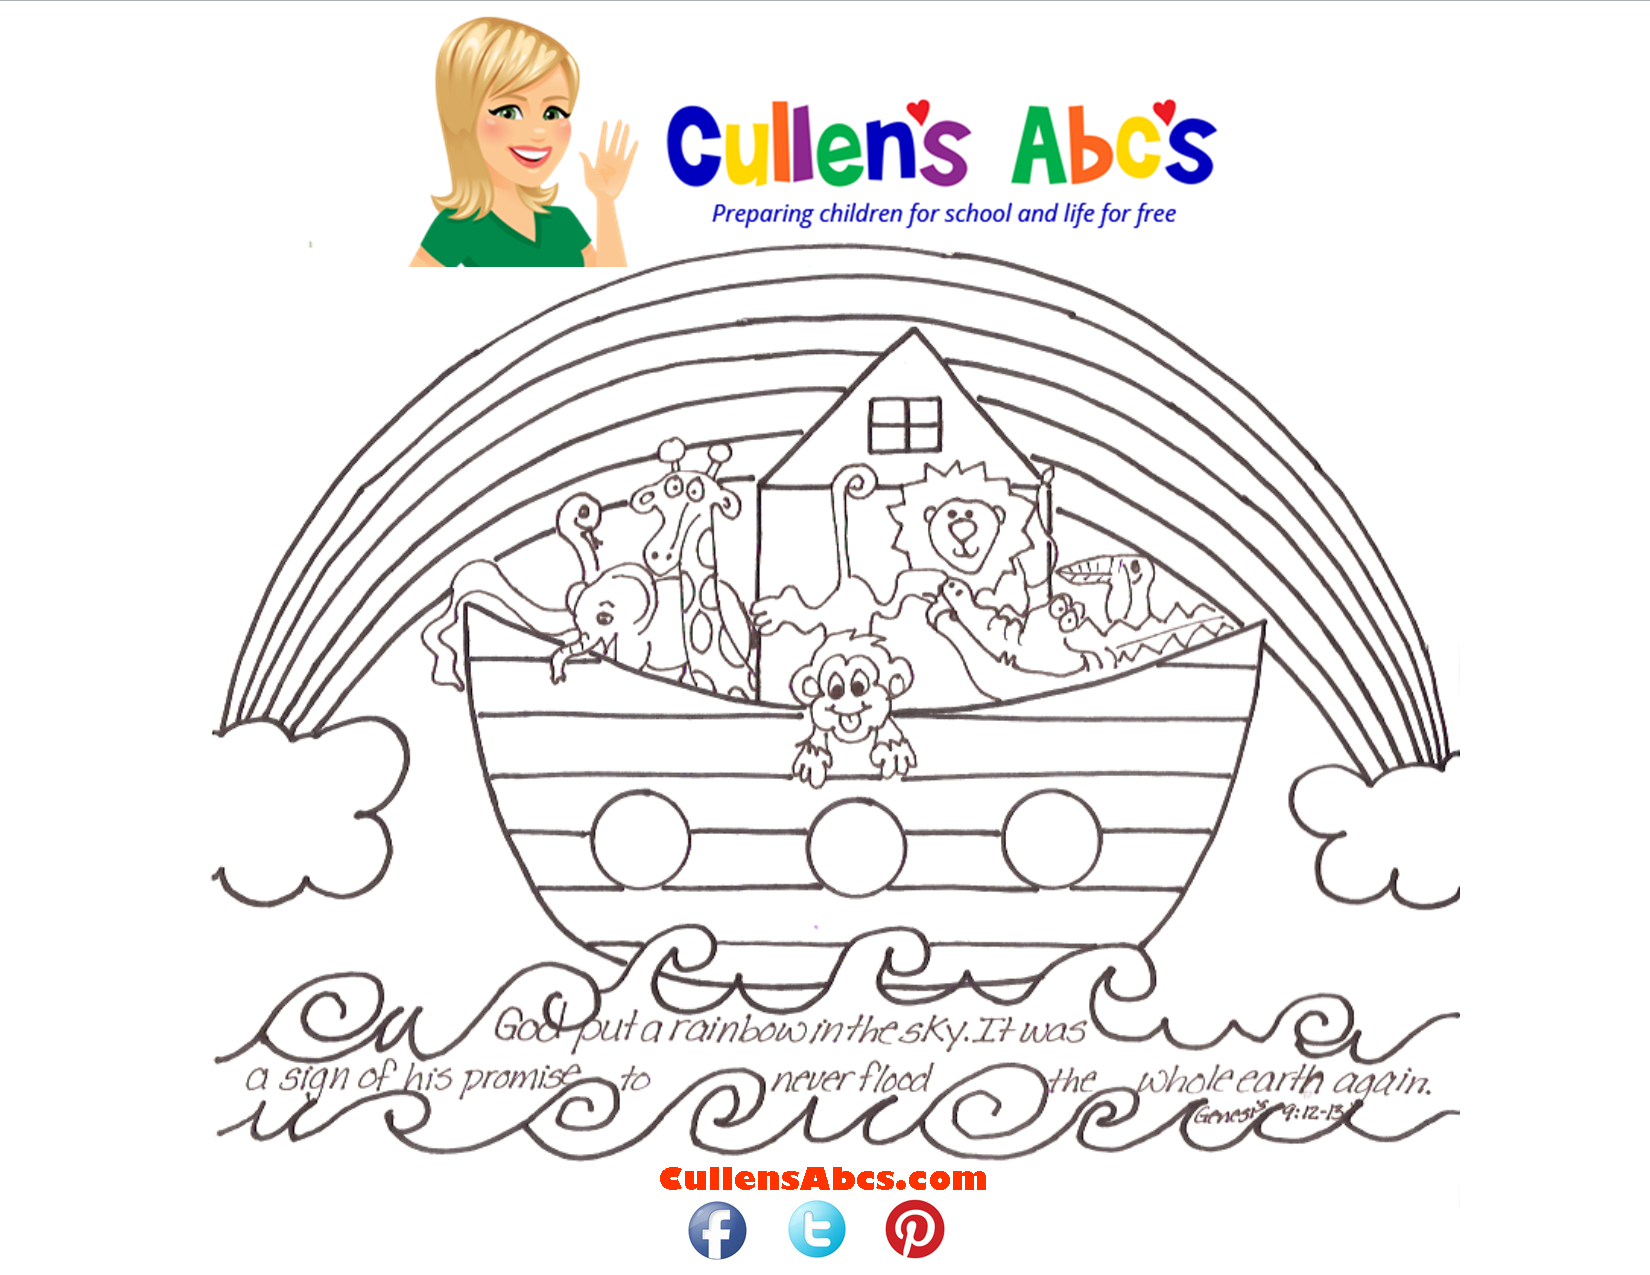 noahs ark bible key point coloring page here is a video of the noahs ark